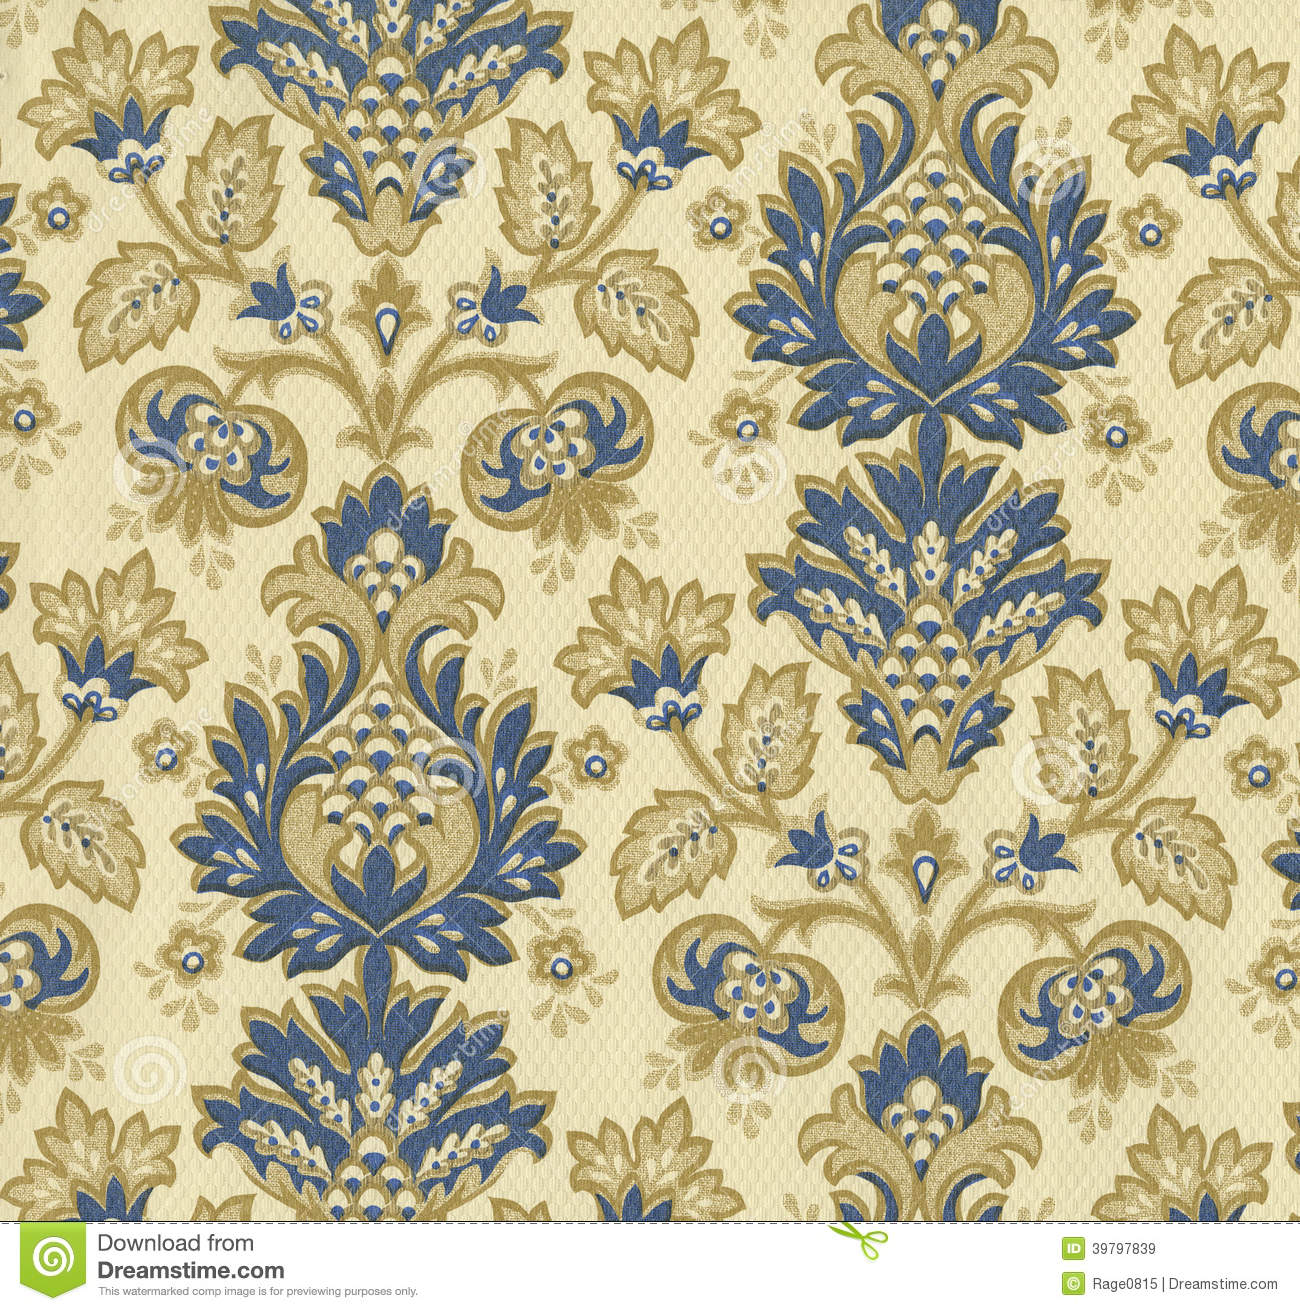 High Resolution Wallpaper: High Resolution Wallpaper With Floral Pattern Stock